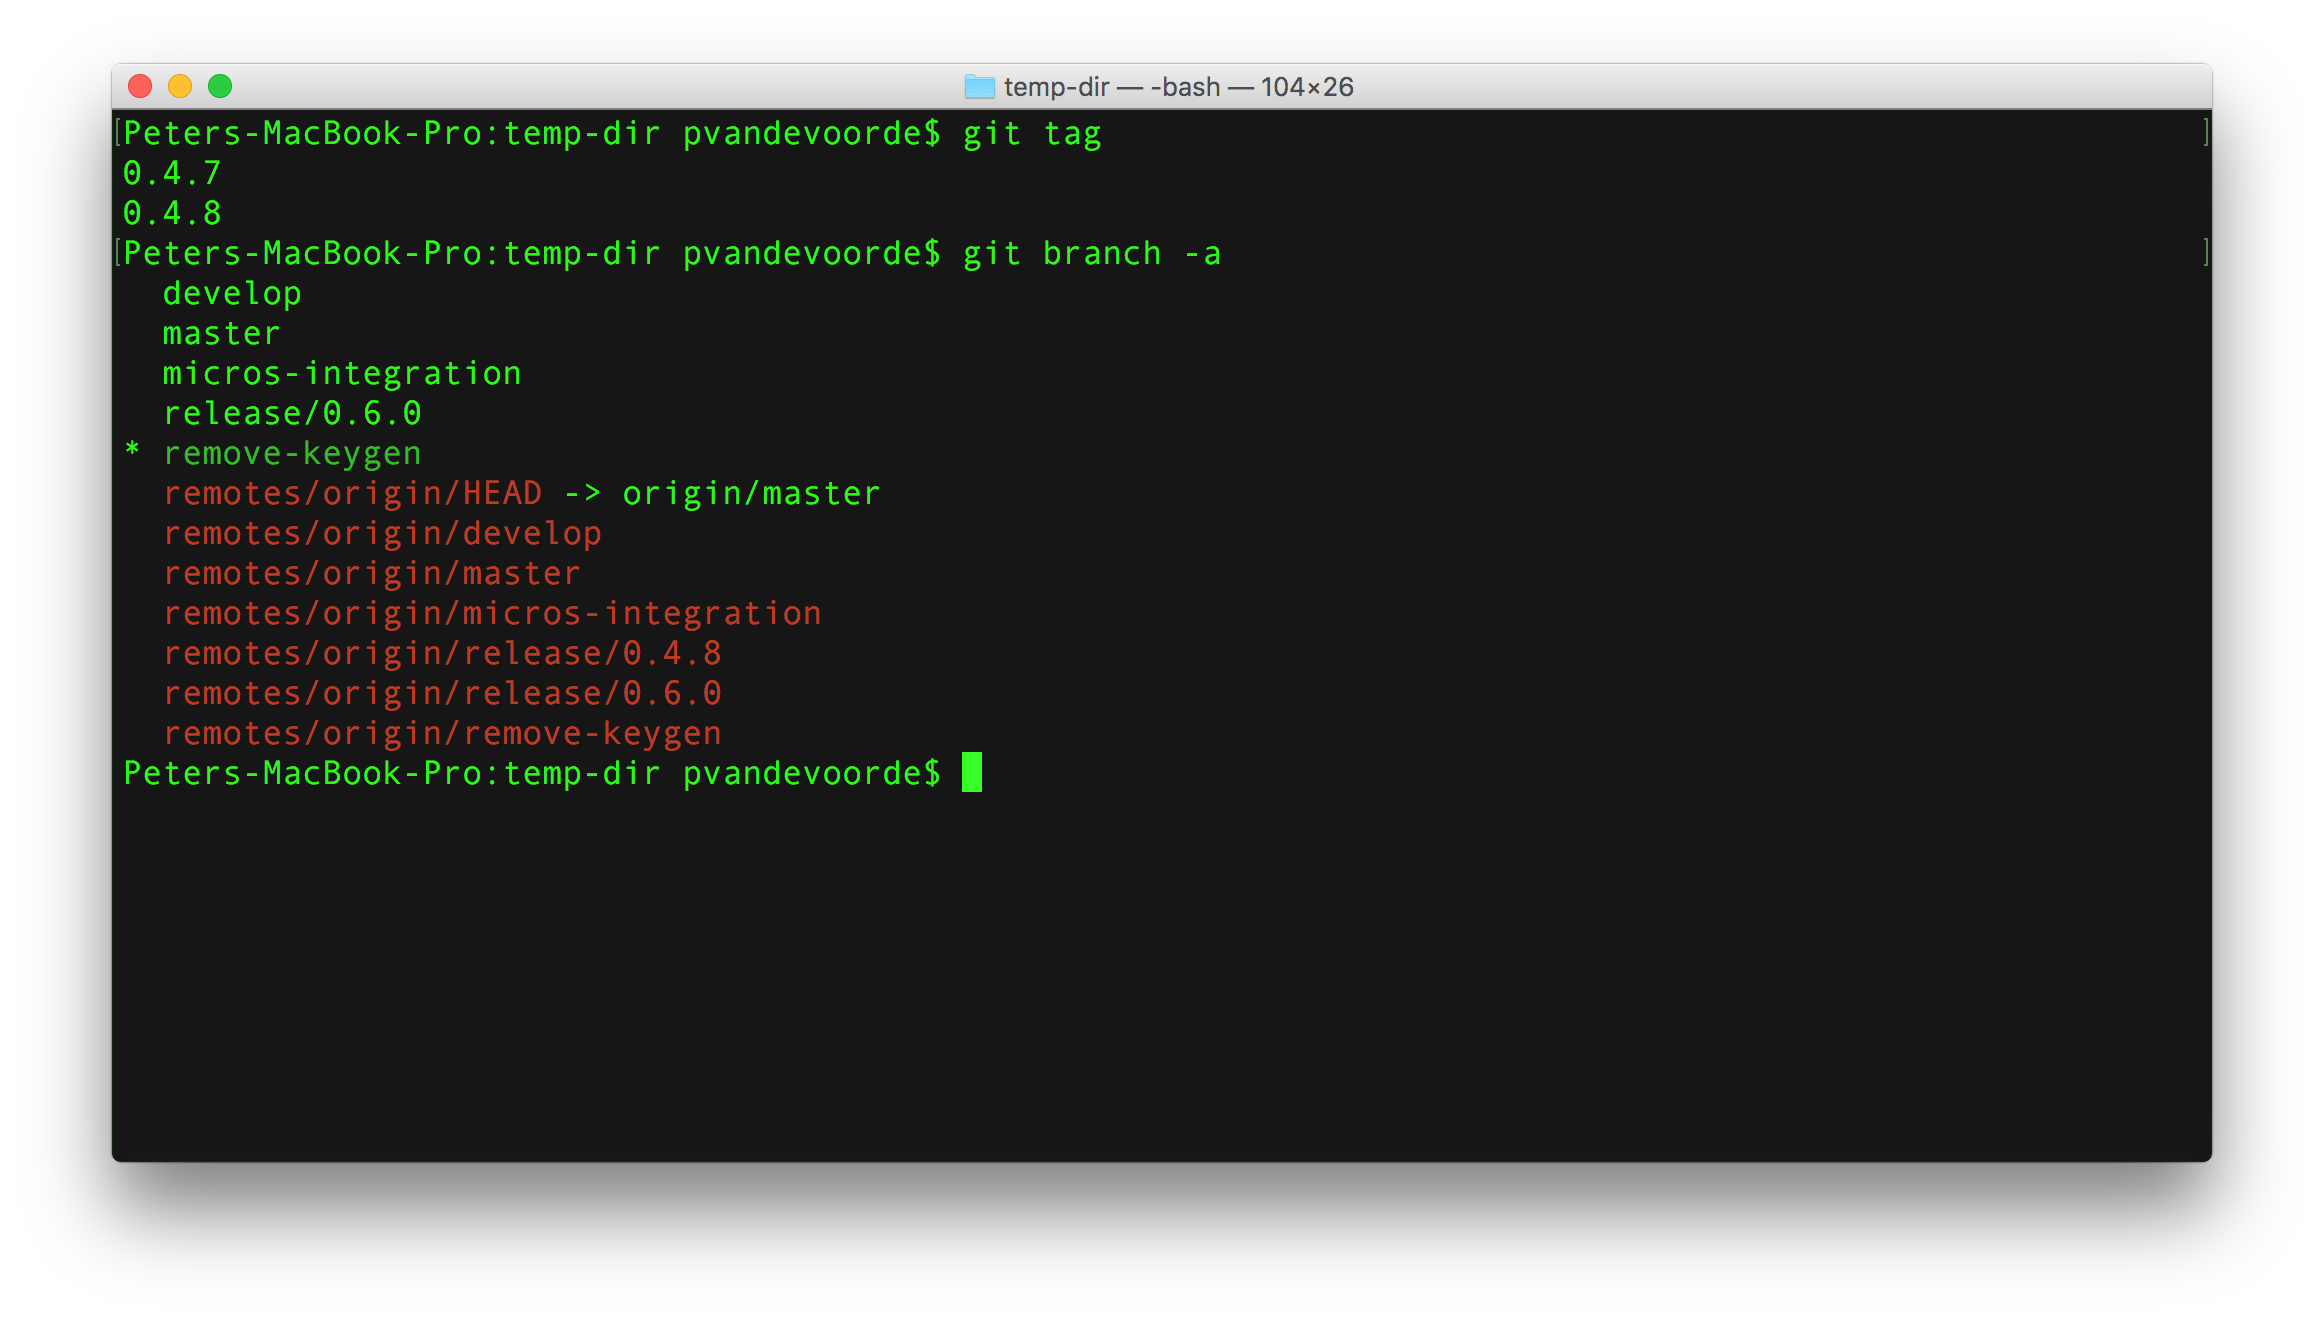 GIT - move a full git repository from one remote sever to another